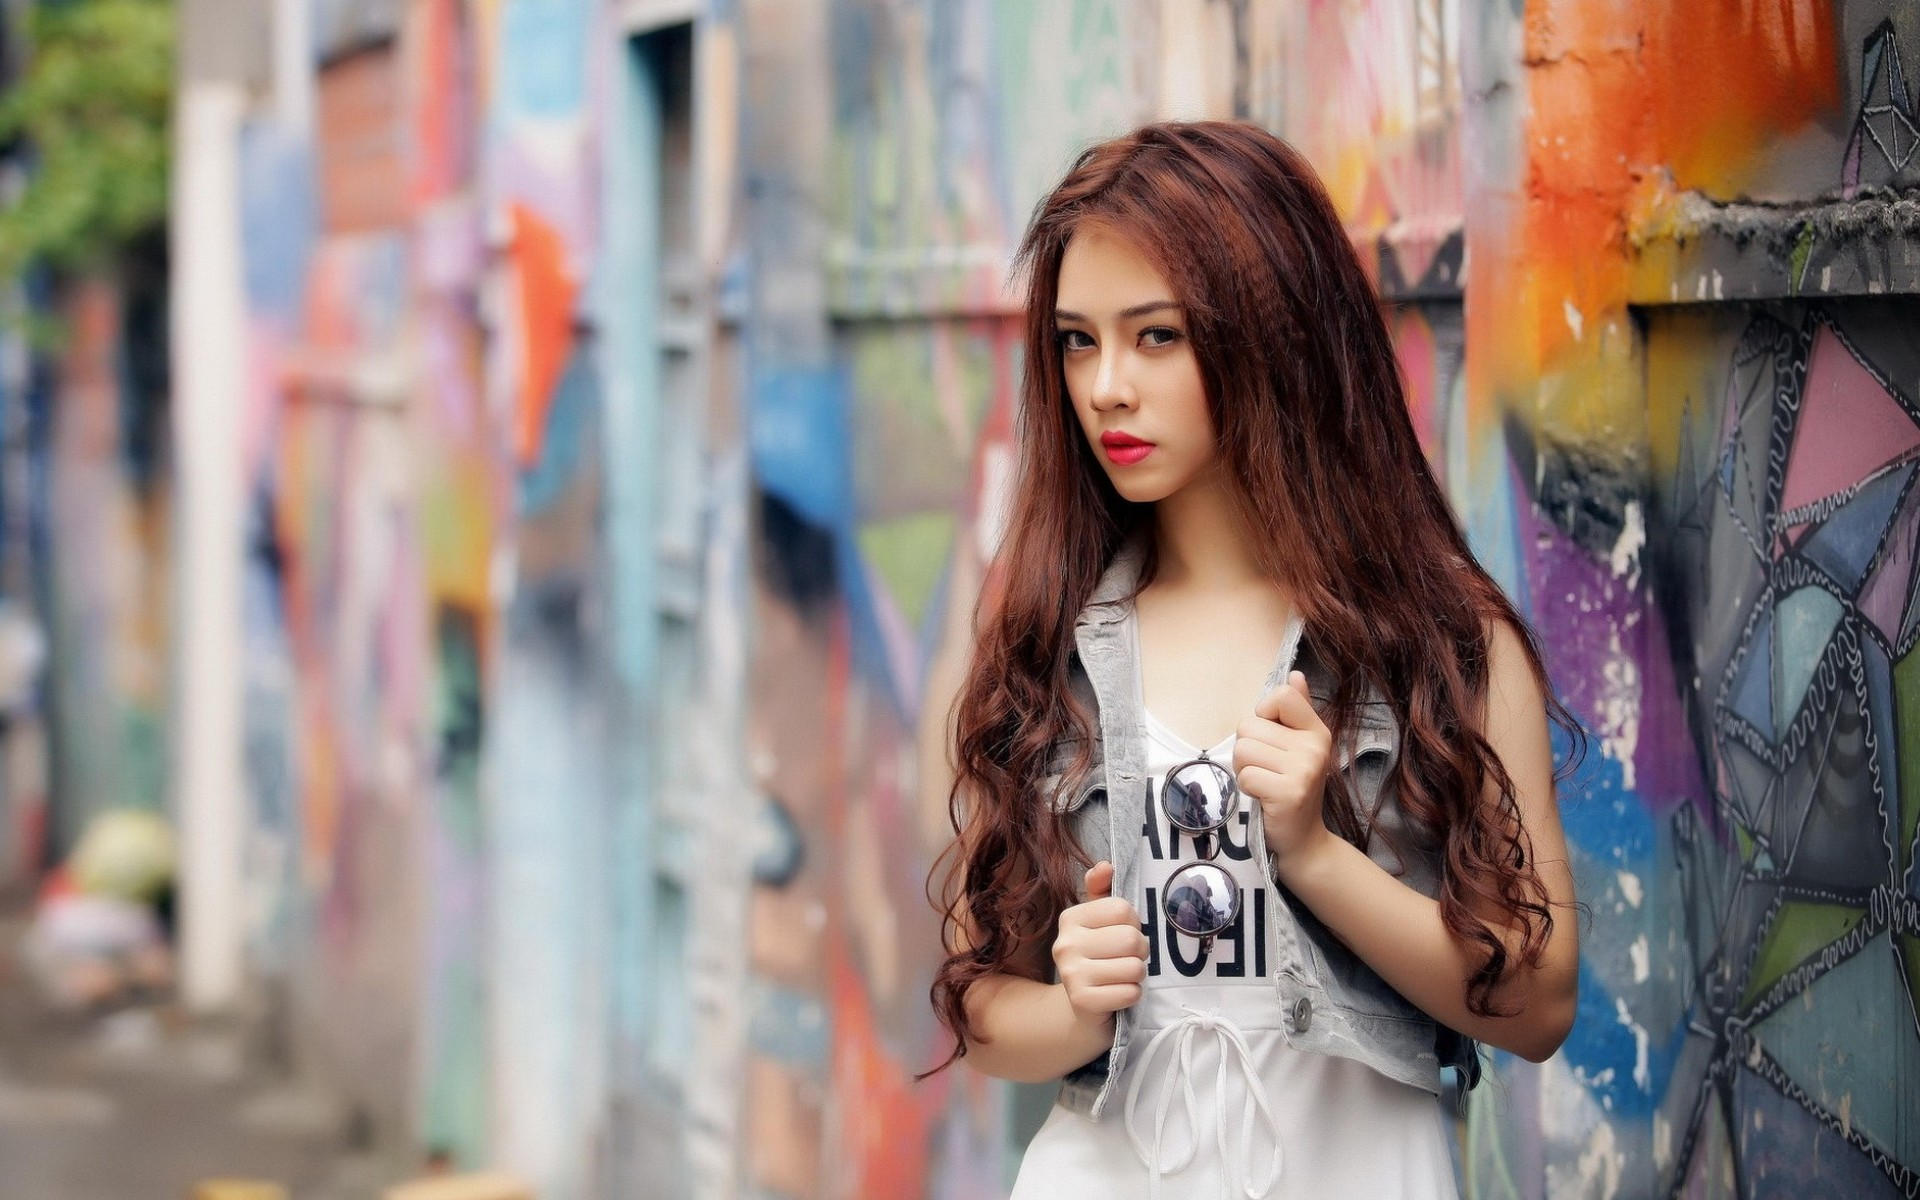 Cool photos for girls